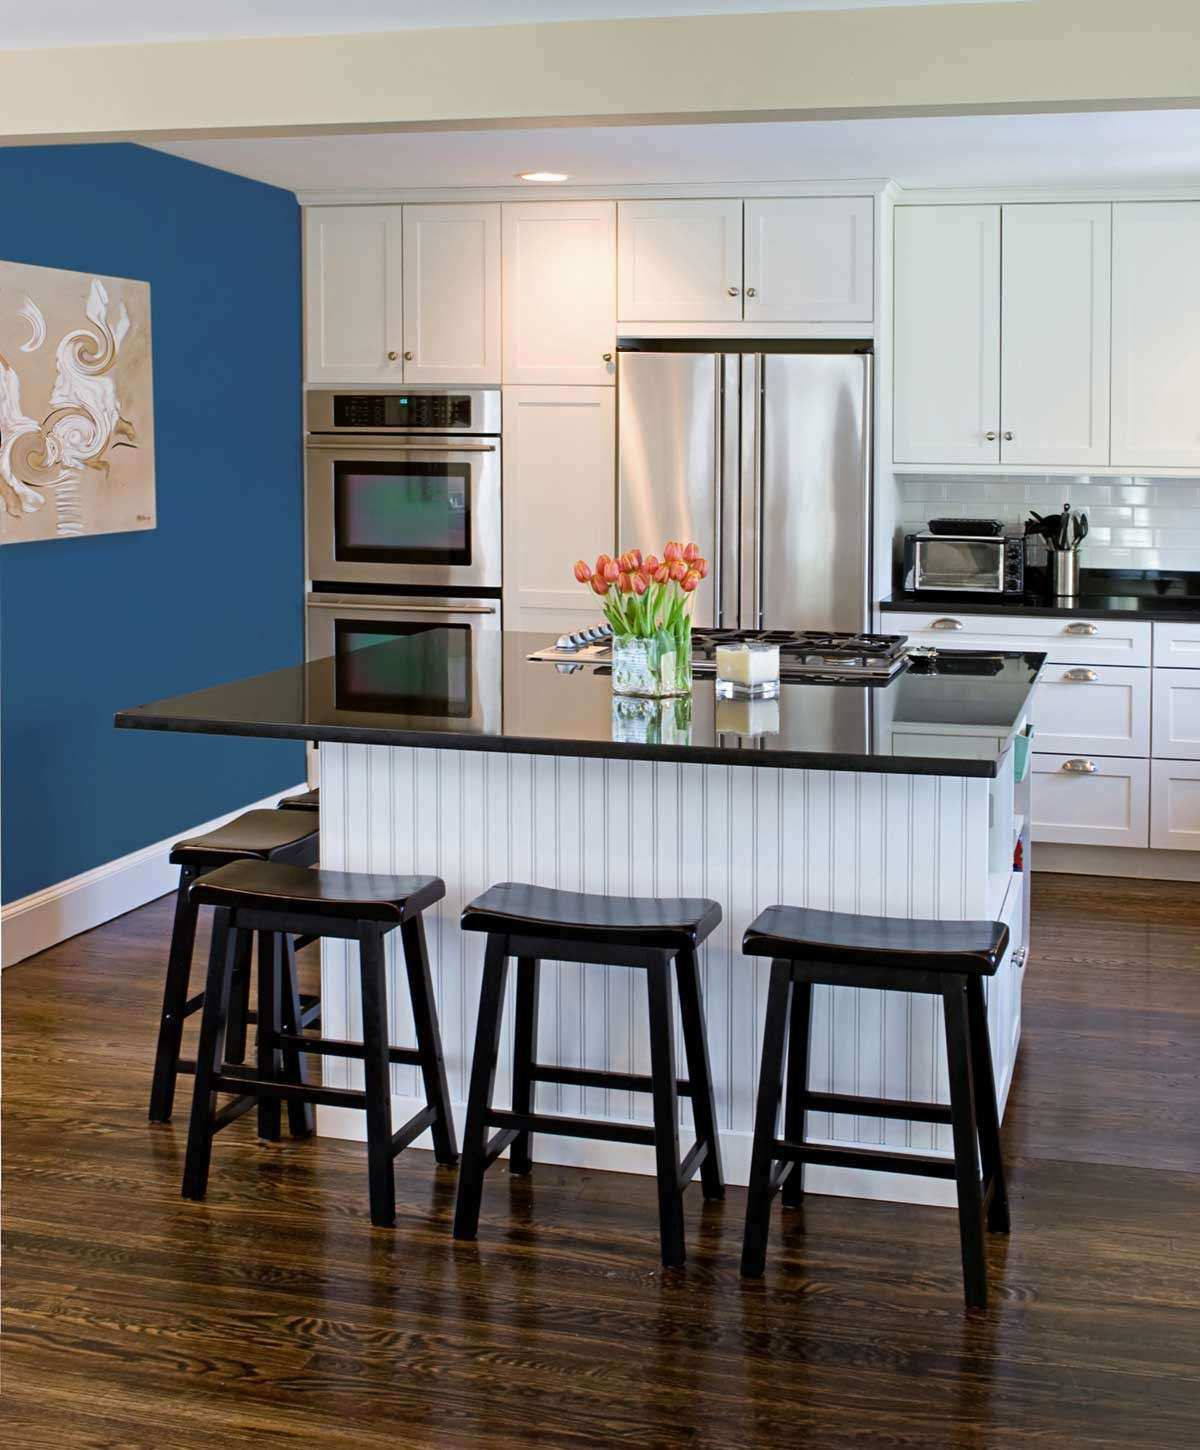 Blue kitchen Walls With White Cabinets 2016